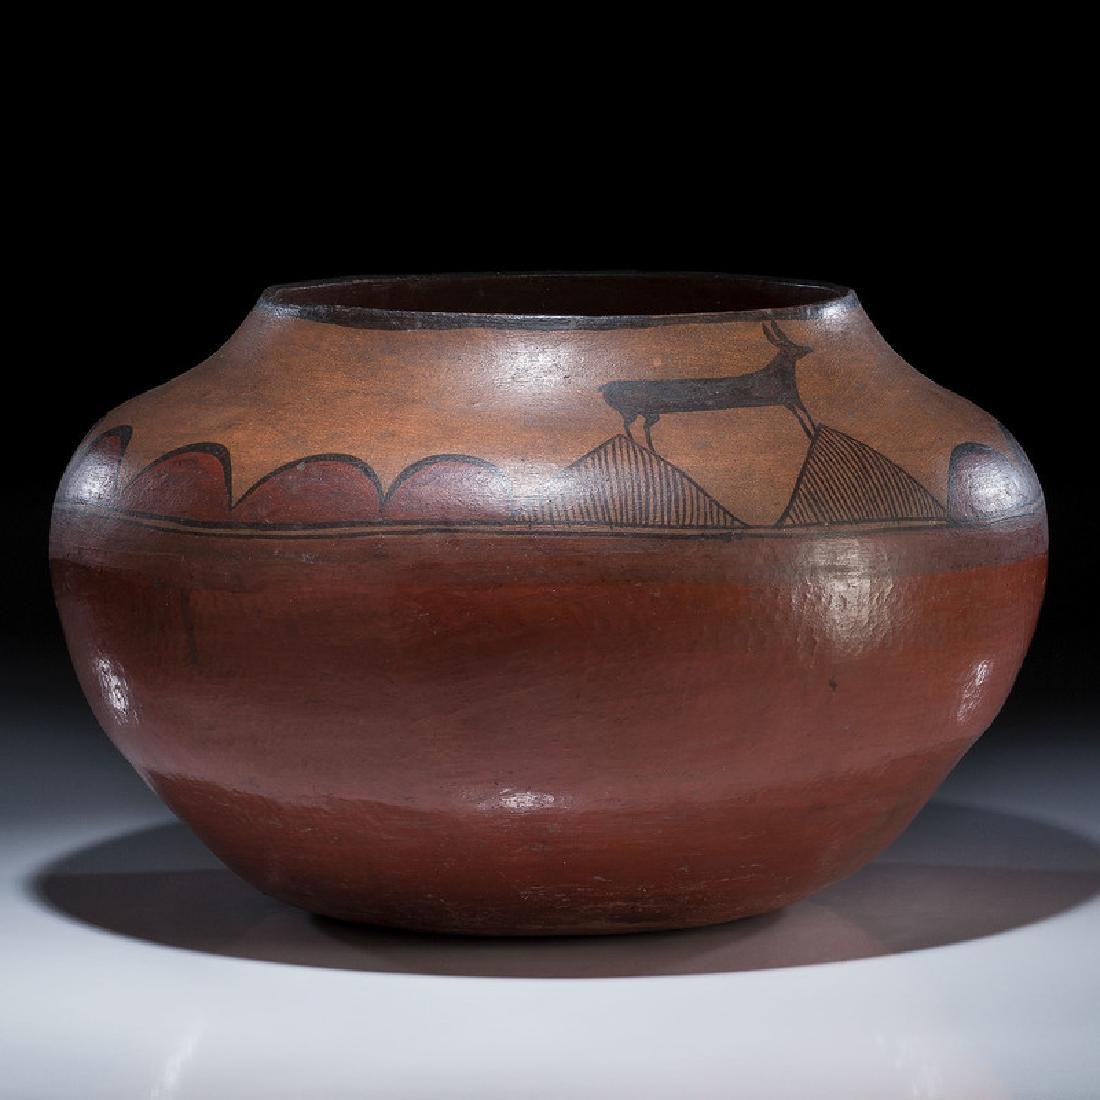 Zia Pictorial Pottery Olla, From the Collection of